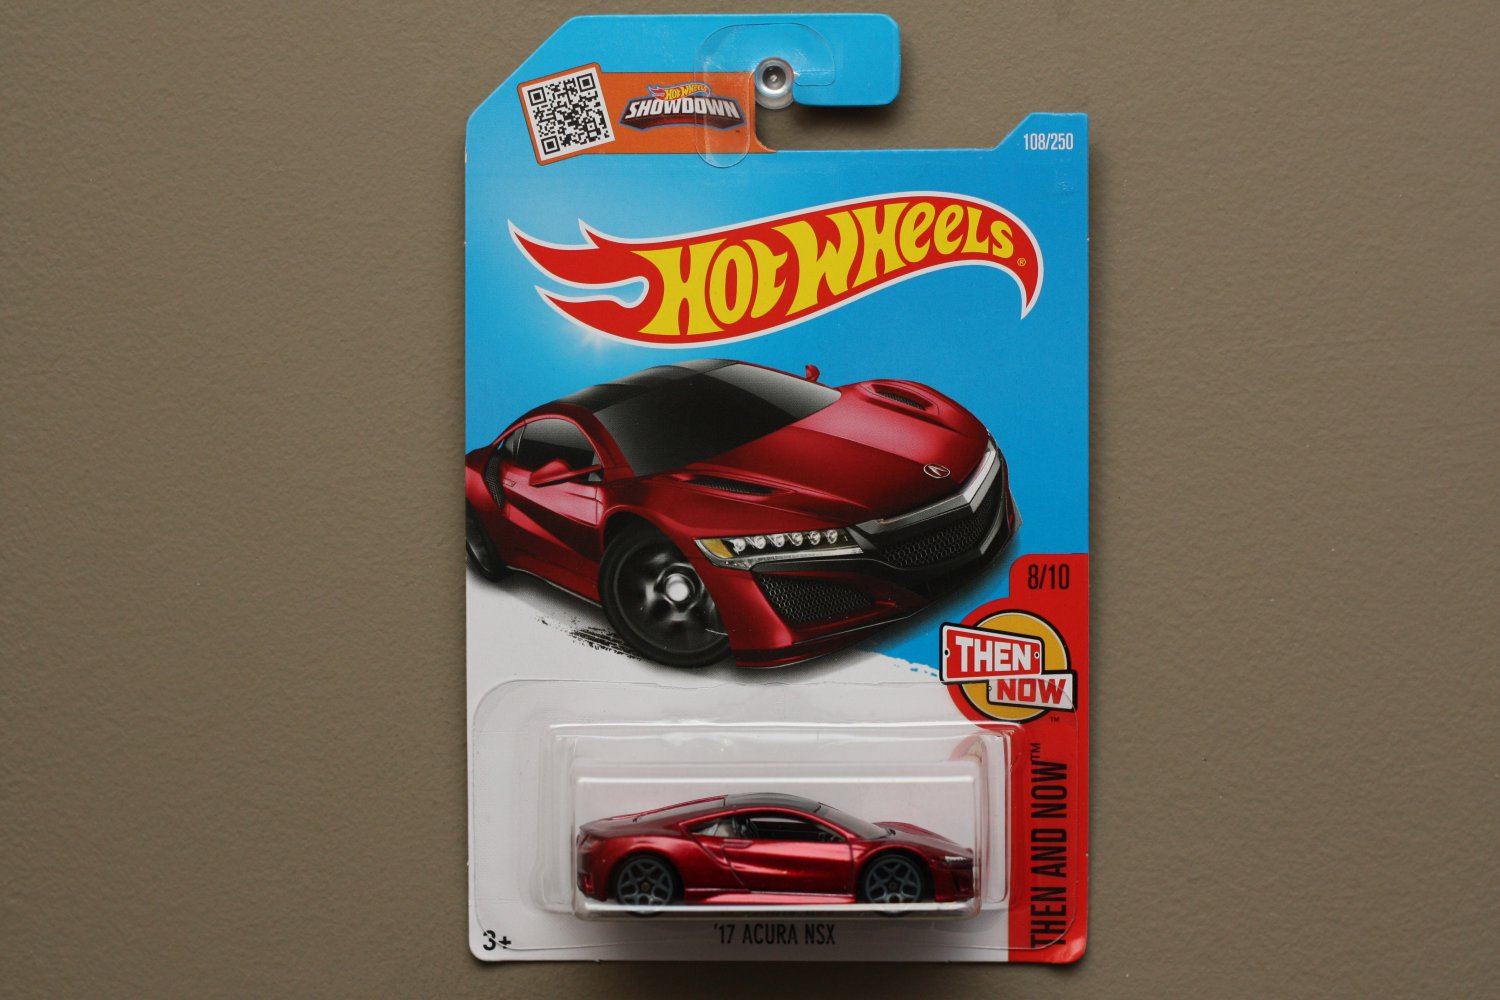 Hot wheels 2016 then and now 39 17 acura nsx red for 9 salon hot wheels 2016